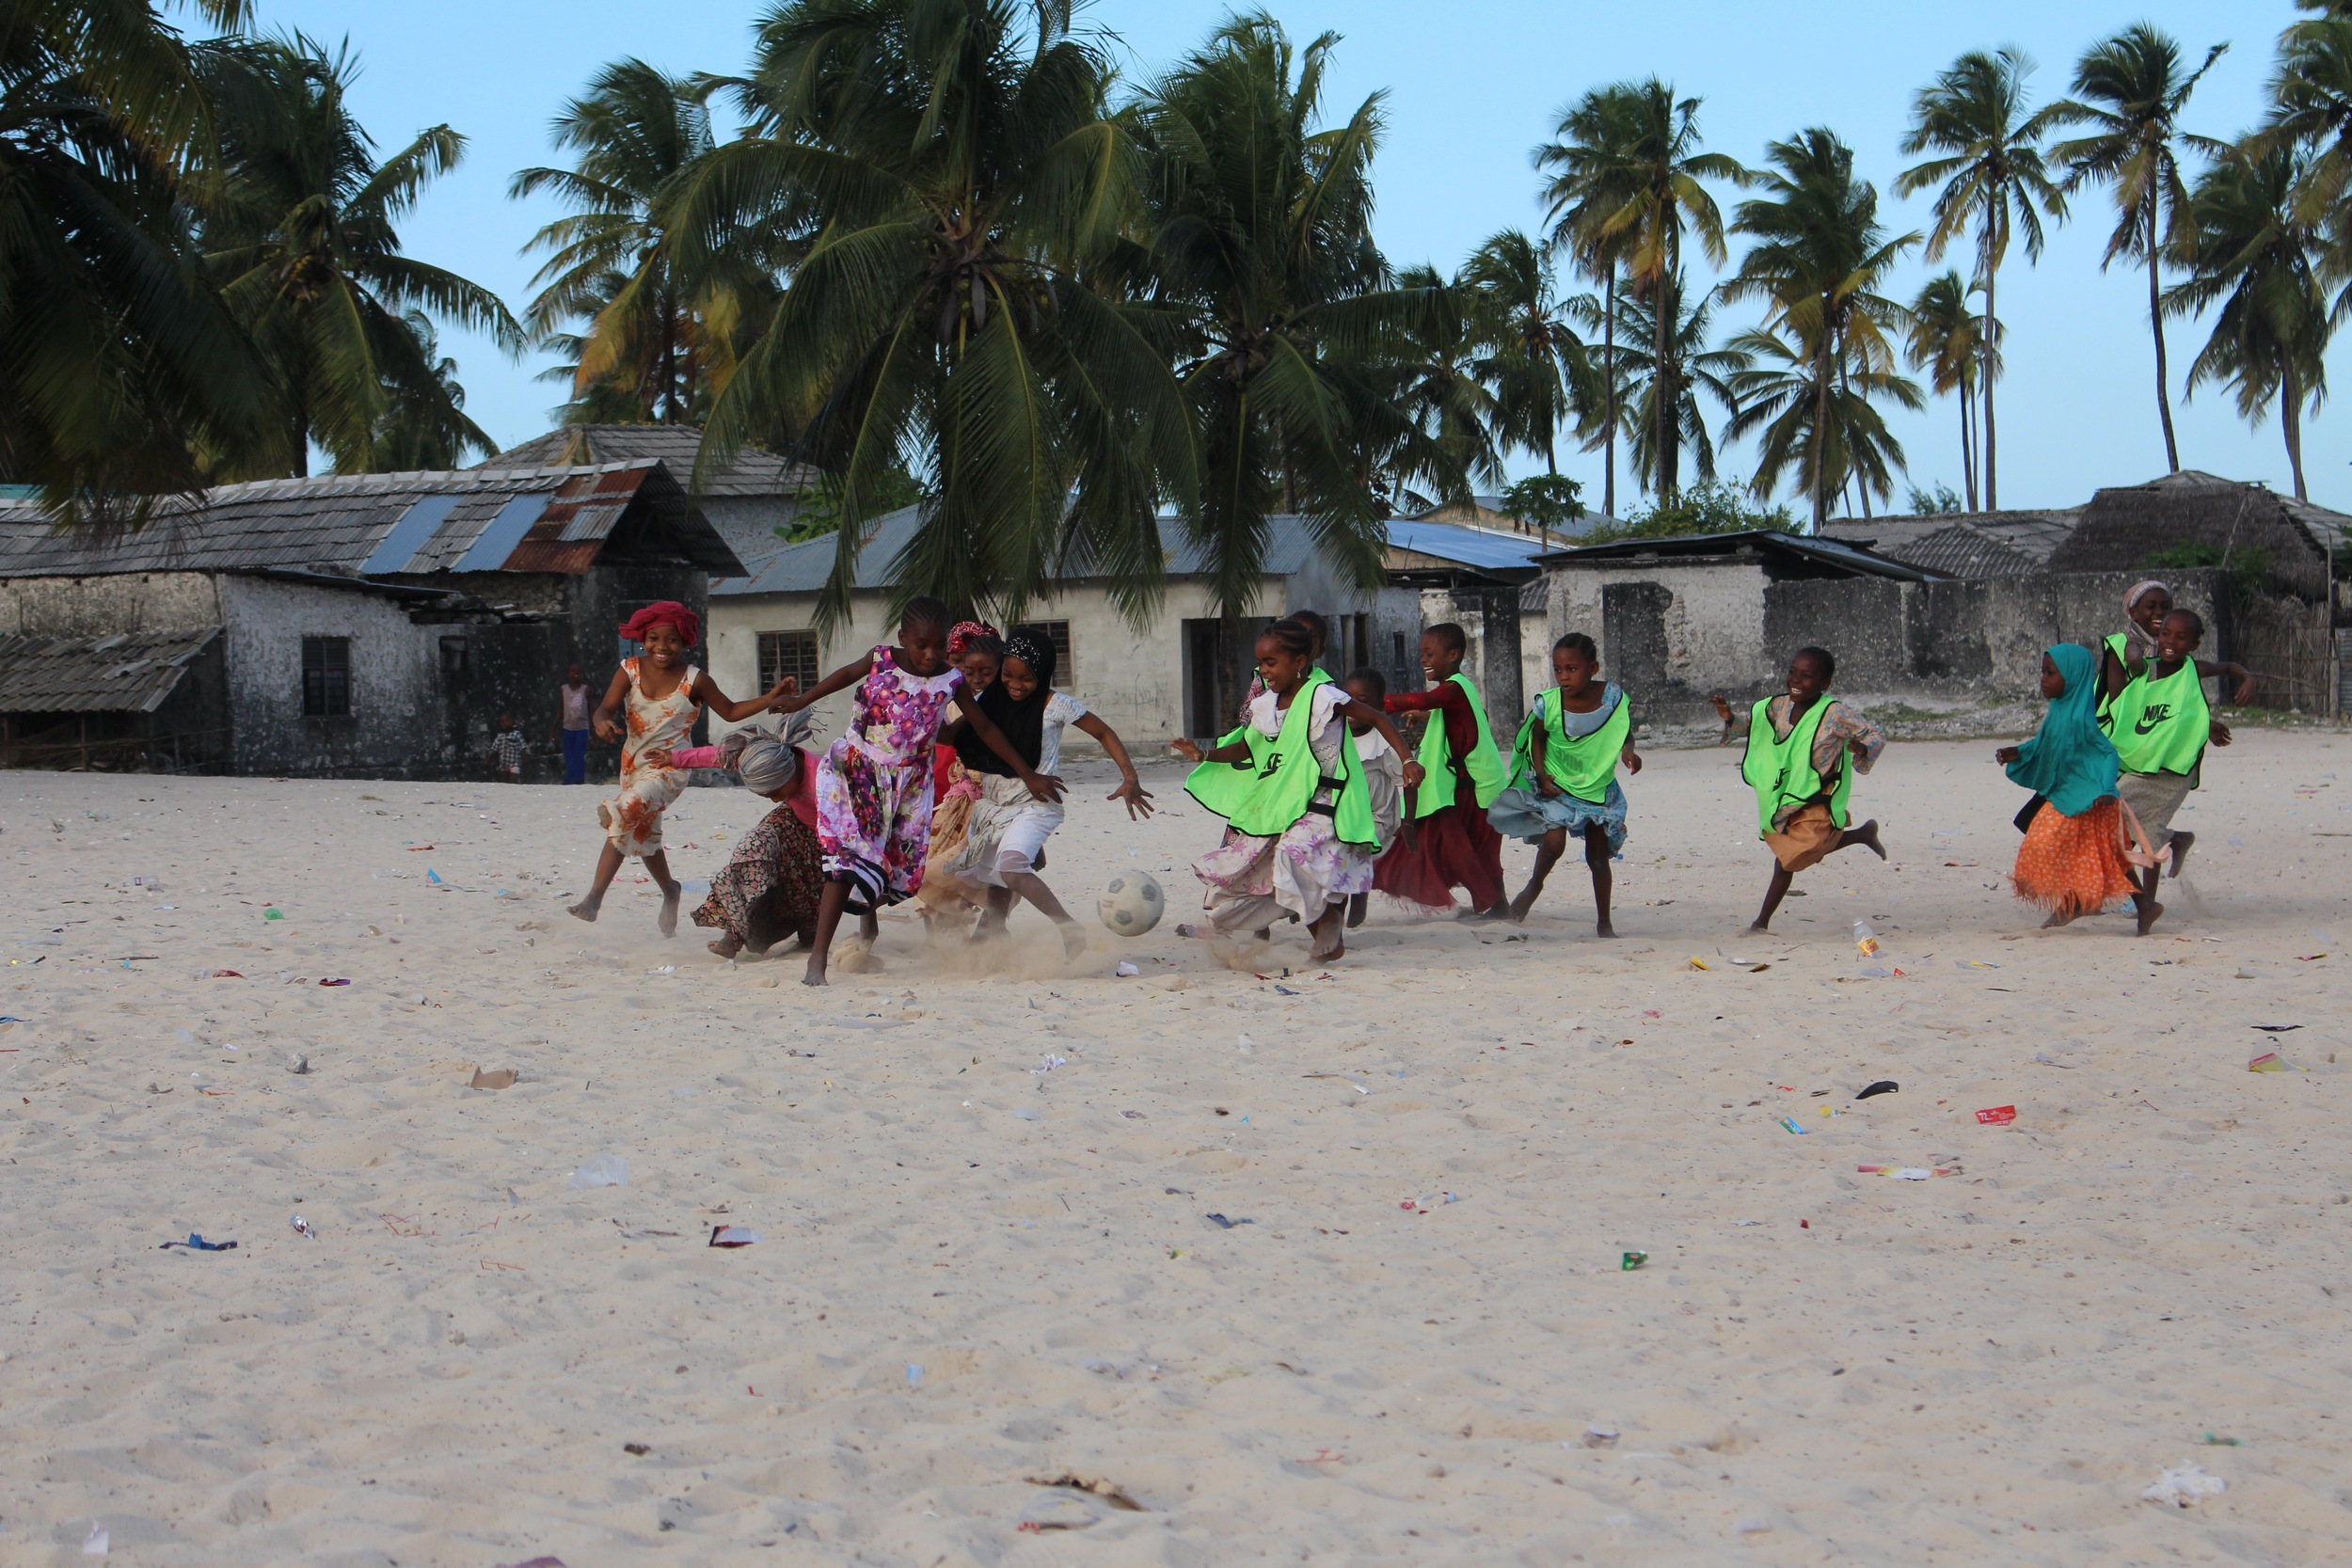 Girls scrimmage in Paje, July 2015